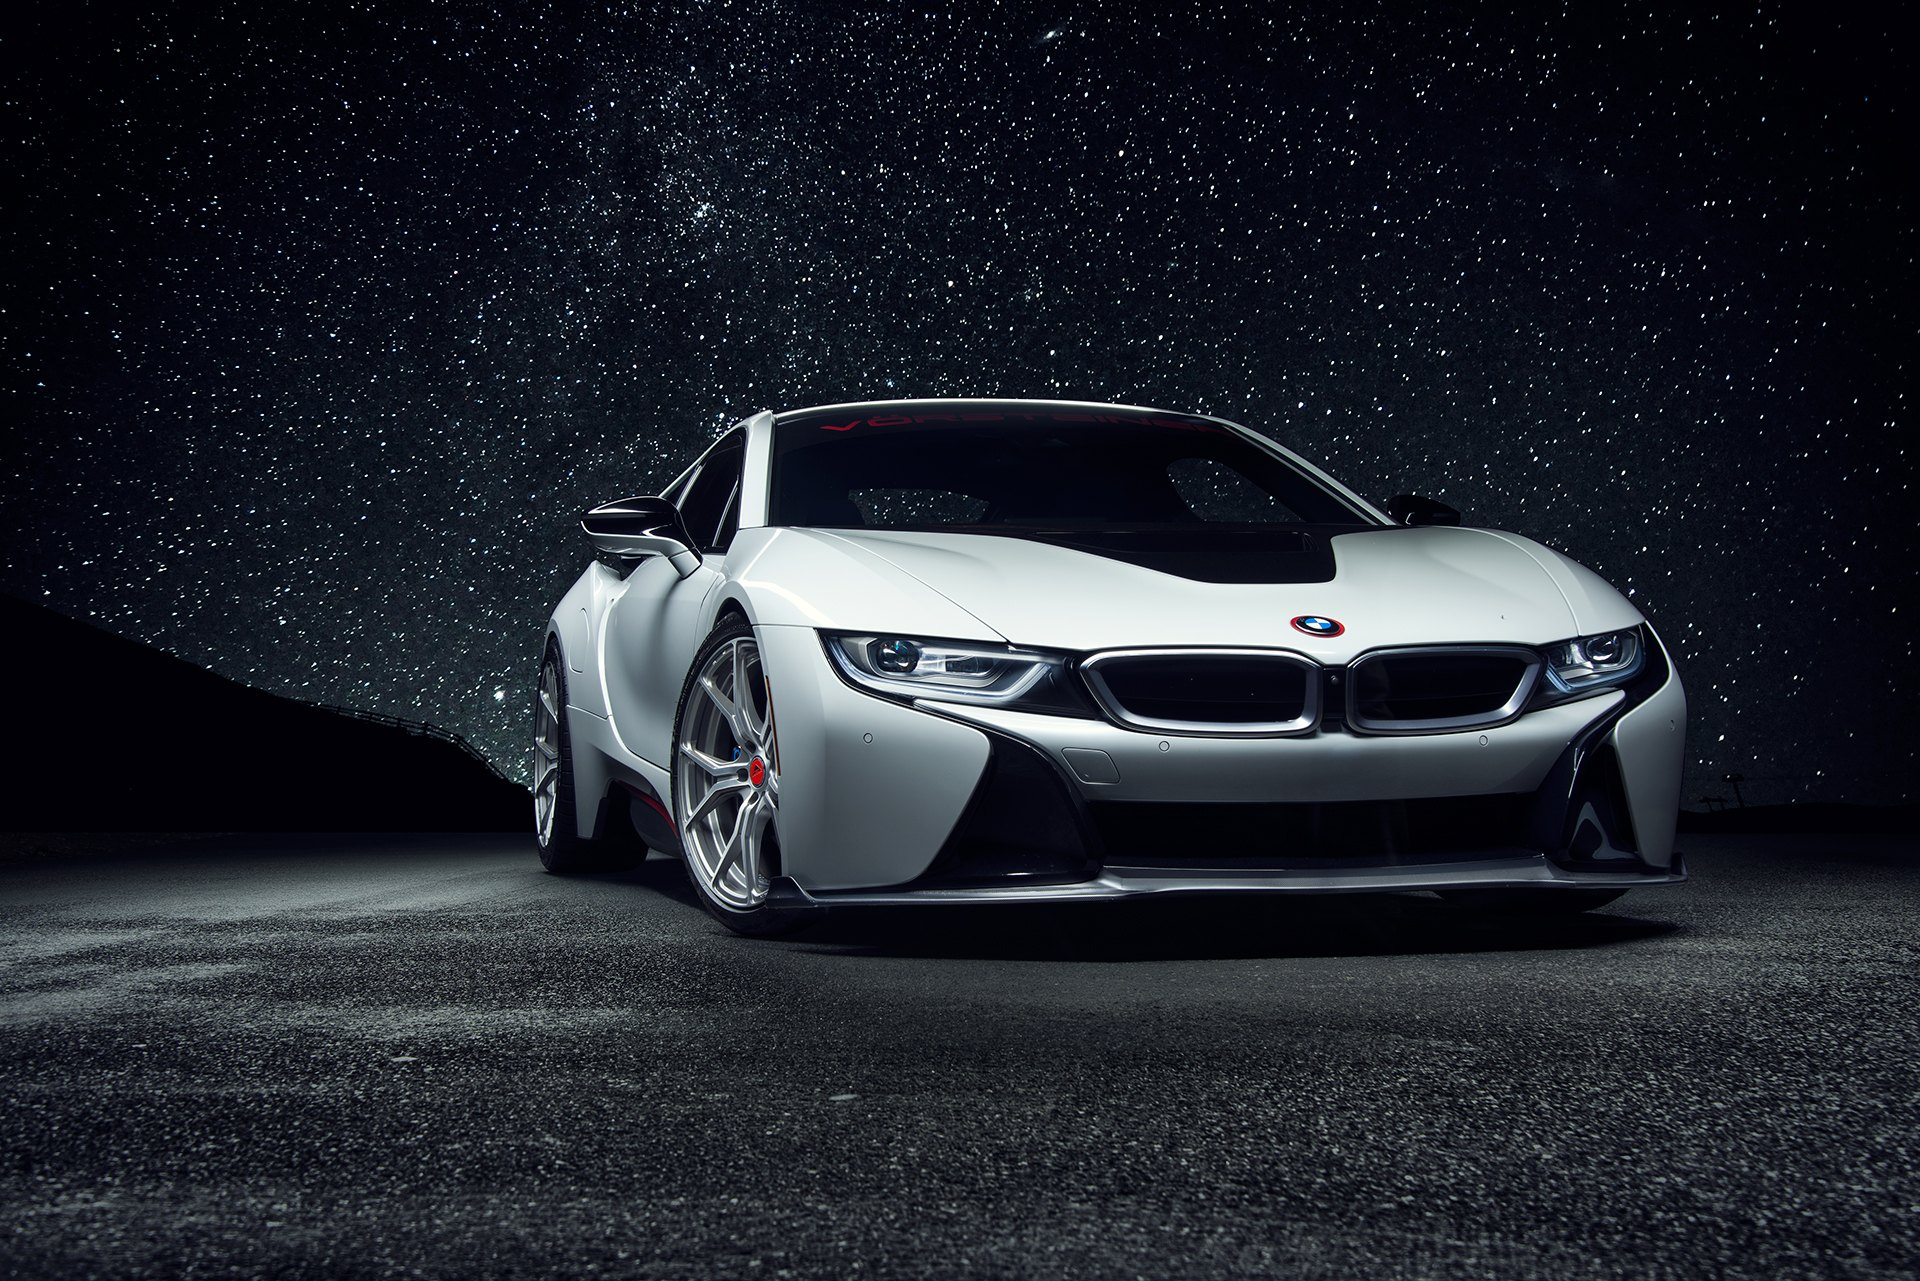 White Bmw I8 Gains Futuristic Look Even More With Custom Parts